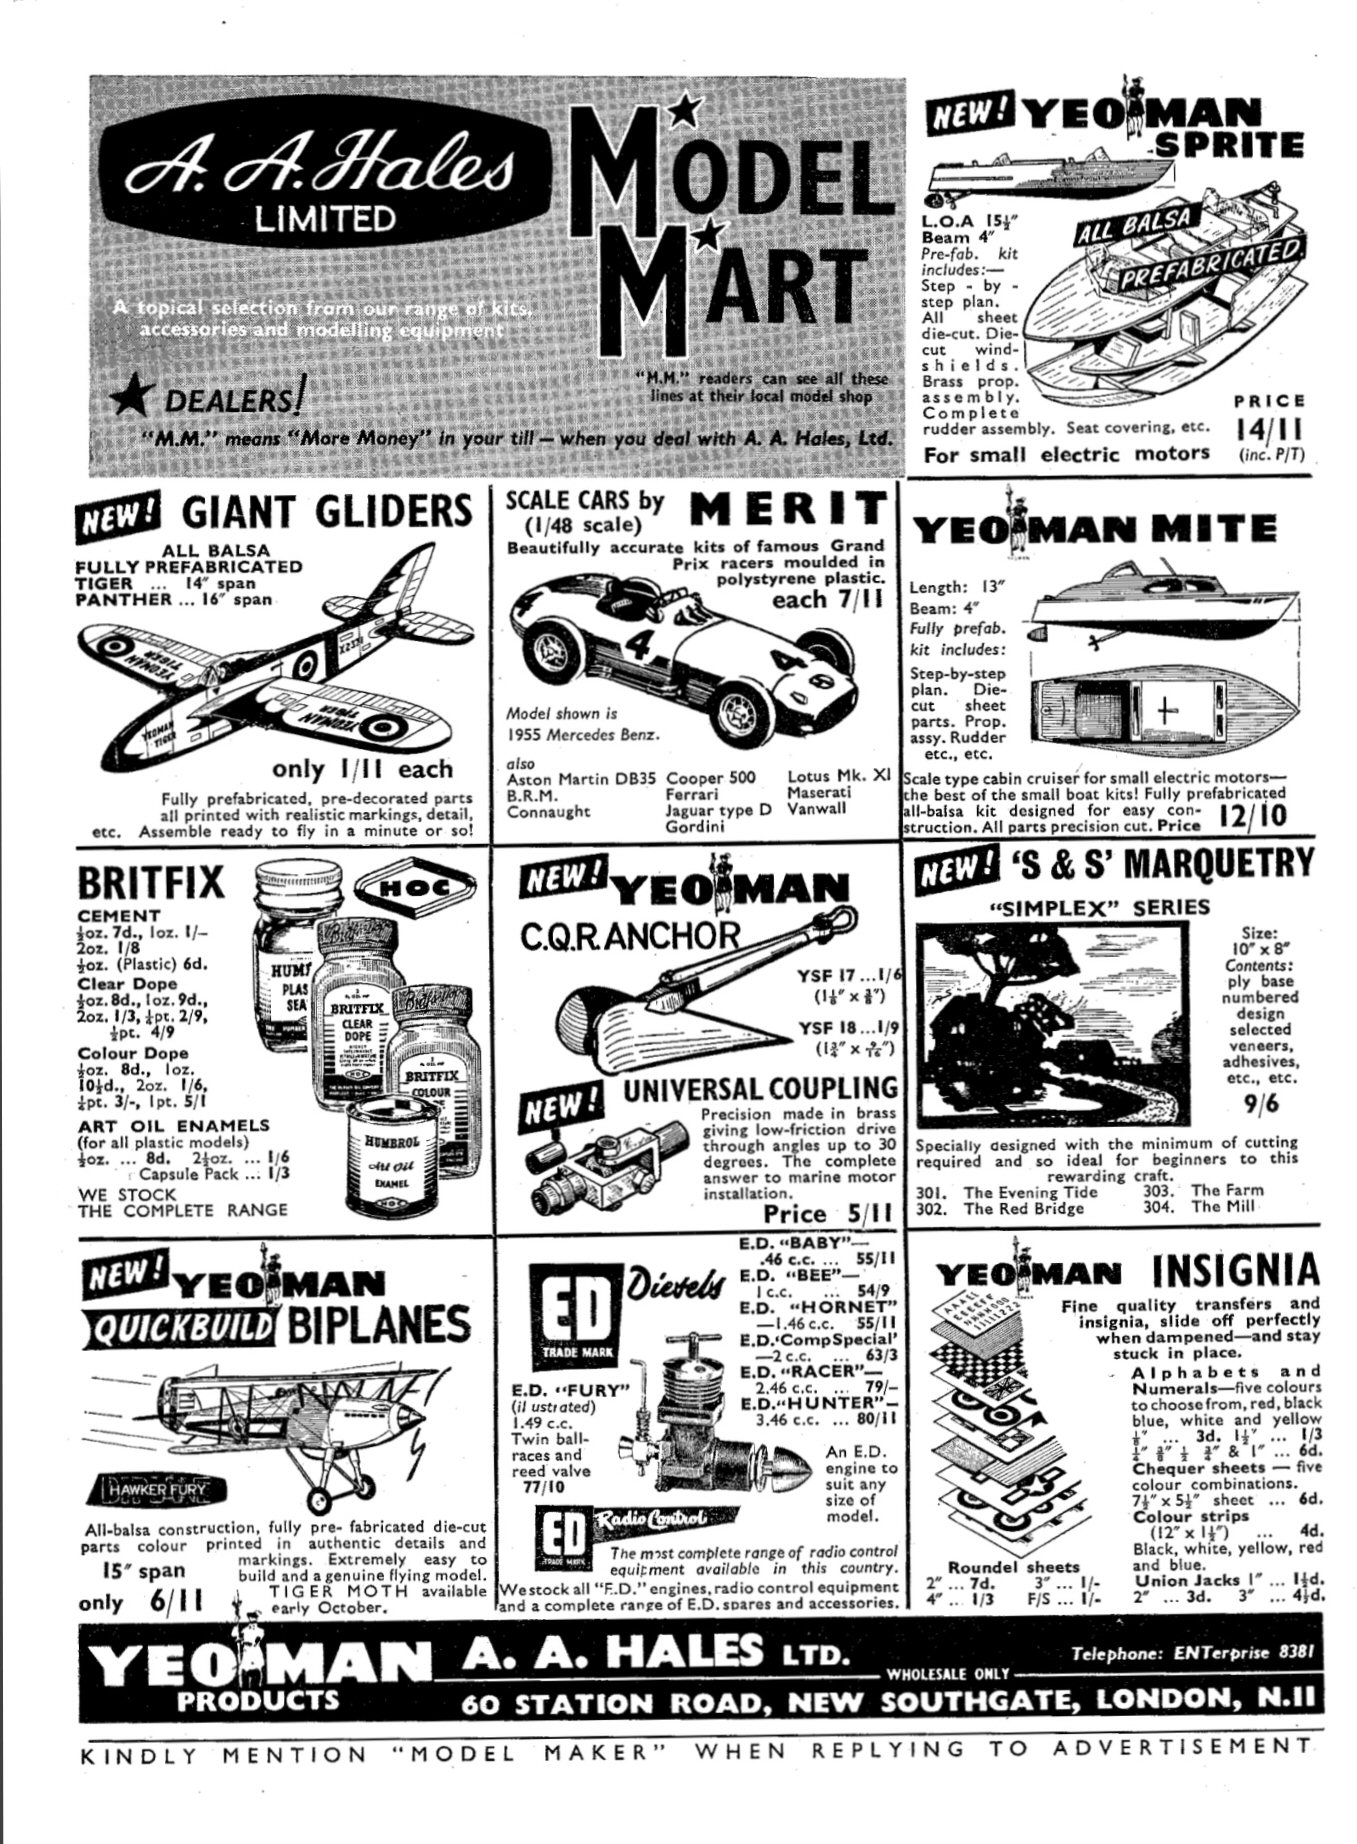 Humbrol tin evolution an exercise in modelling history airfix may 1959 humbrol ad nvjuhfo Gallery